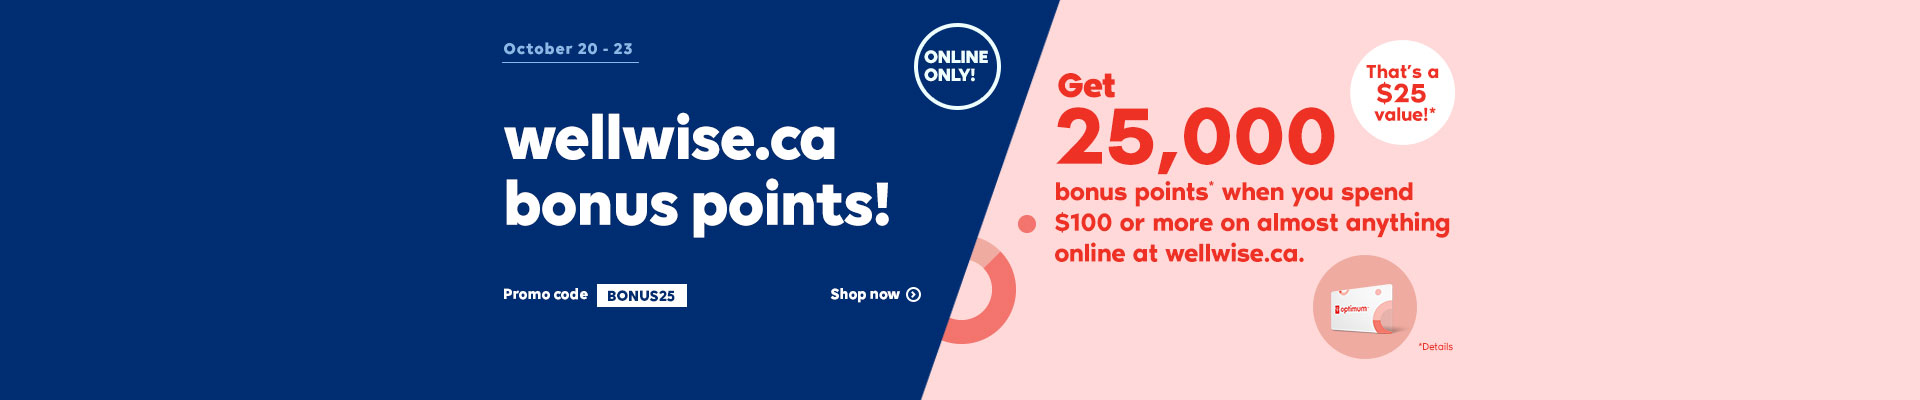 Online Only! October 20 - 23, 2020. Get 25,000 bonus points* when you spend $100 or more on almost anything online at wellwise.ca. Promo code BONUS25. That's a $25 value!* Shop now. *Details.